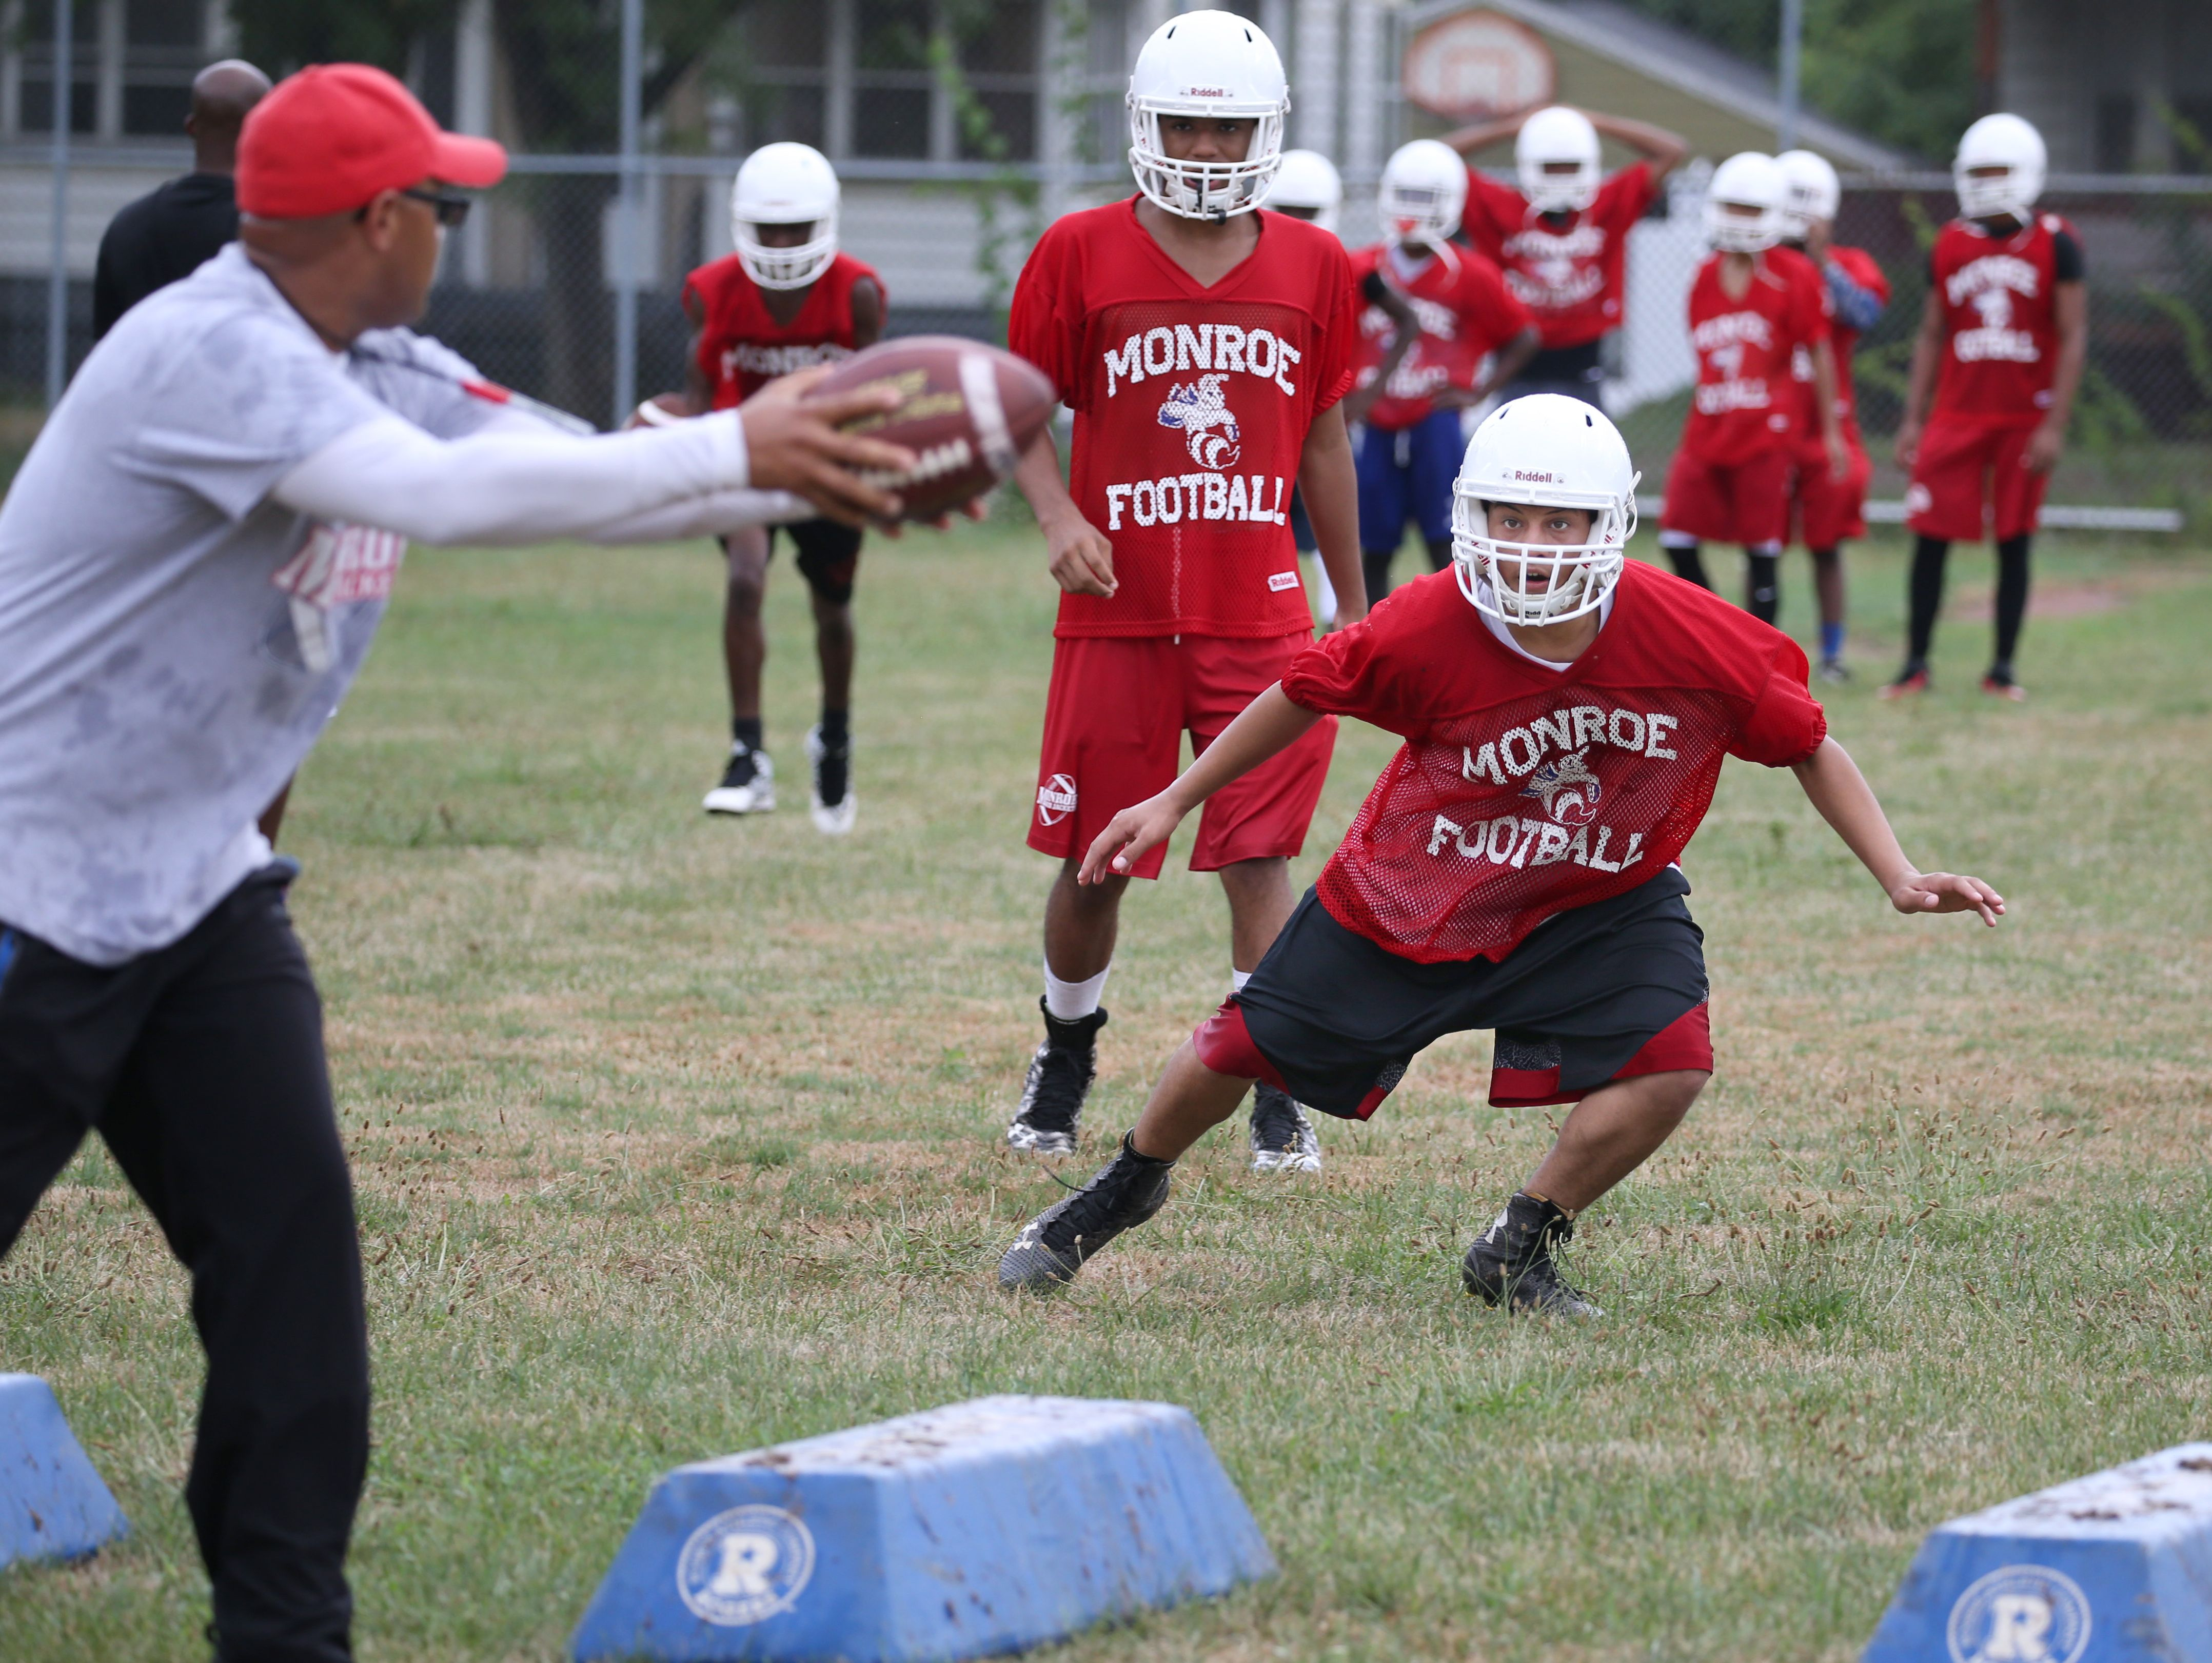 Monroe High linebacker Pablo Alvarez follows the ball as head coach Jason Muhammad simulates a pitch to a running back during linebacker coverage drills during varsity football practice at All City High on Ridgeway Avenue in Rochester Tuesday, Aug. 16, 2016.